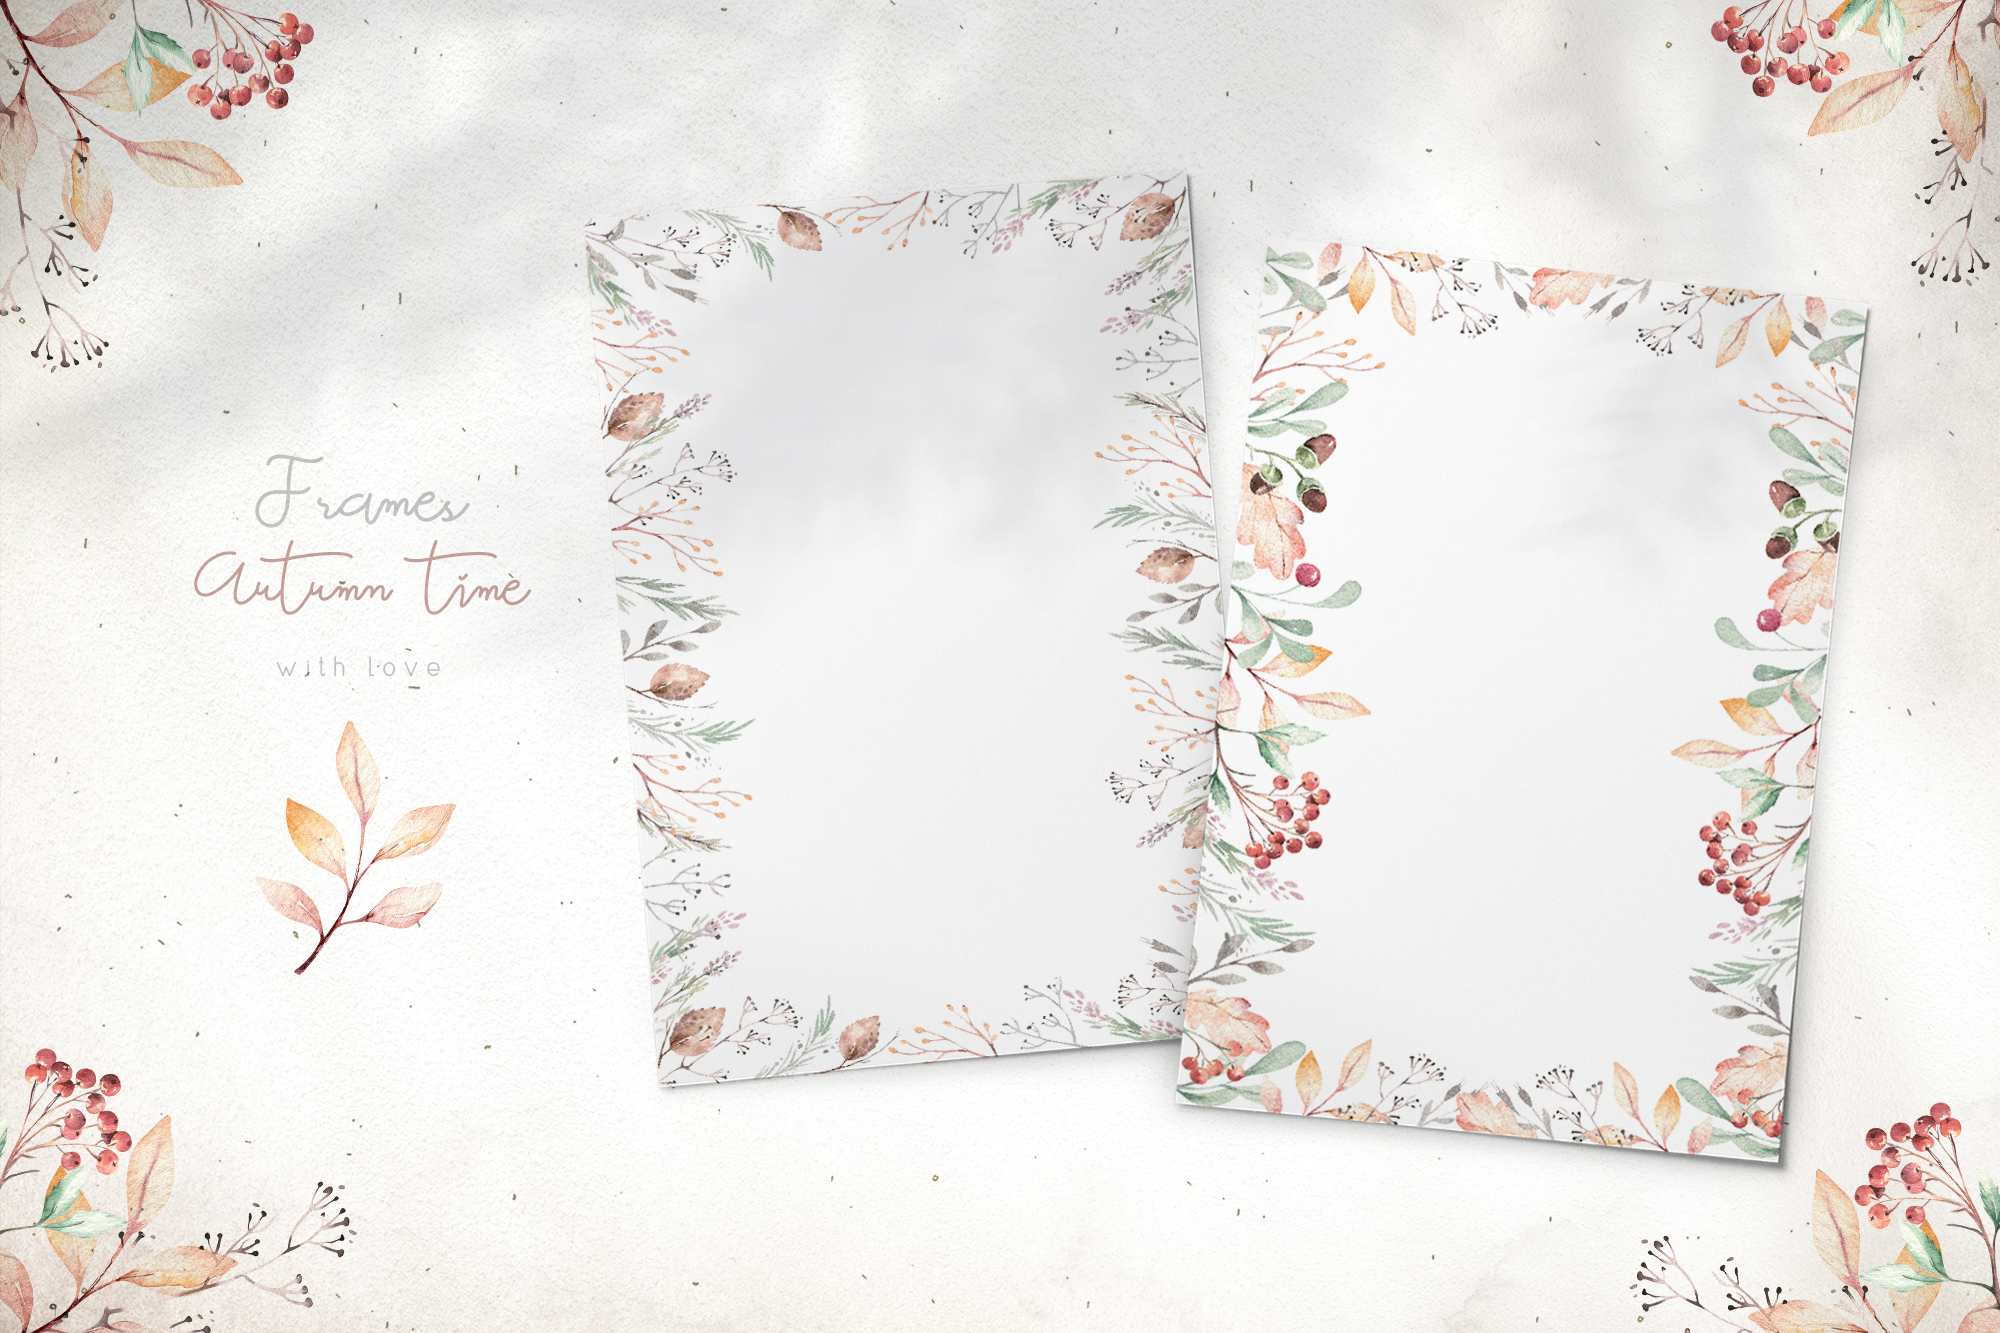 Autumn Time Watercolor Collection